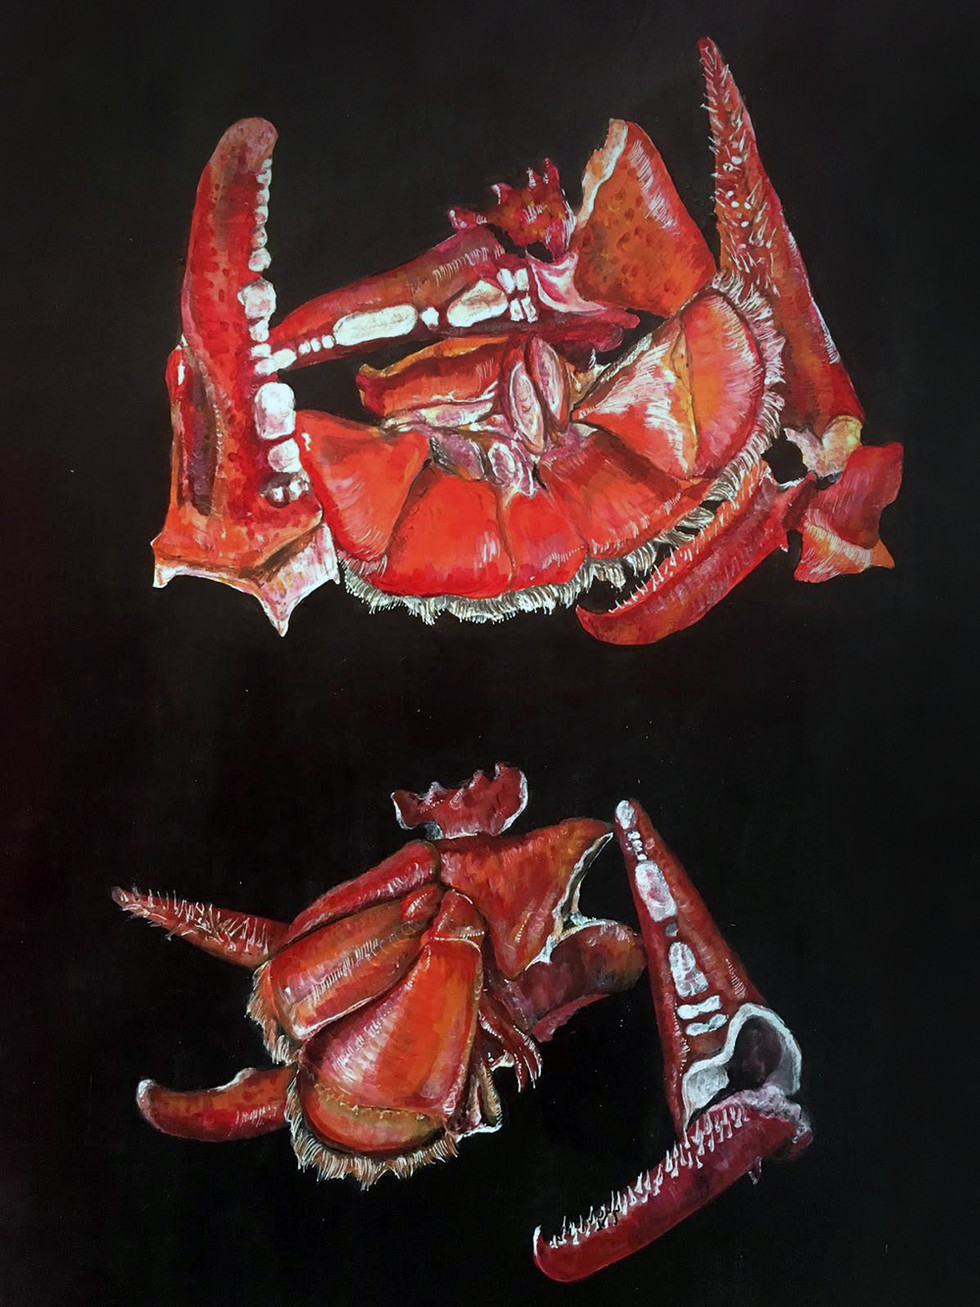 Deconstructed Lobster - 2018